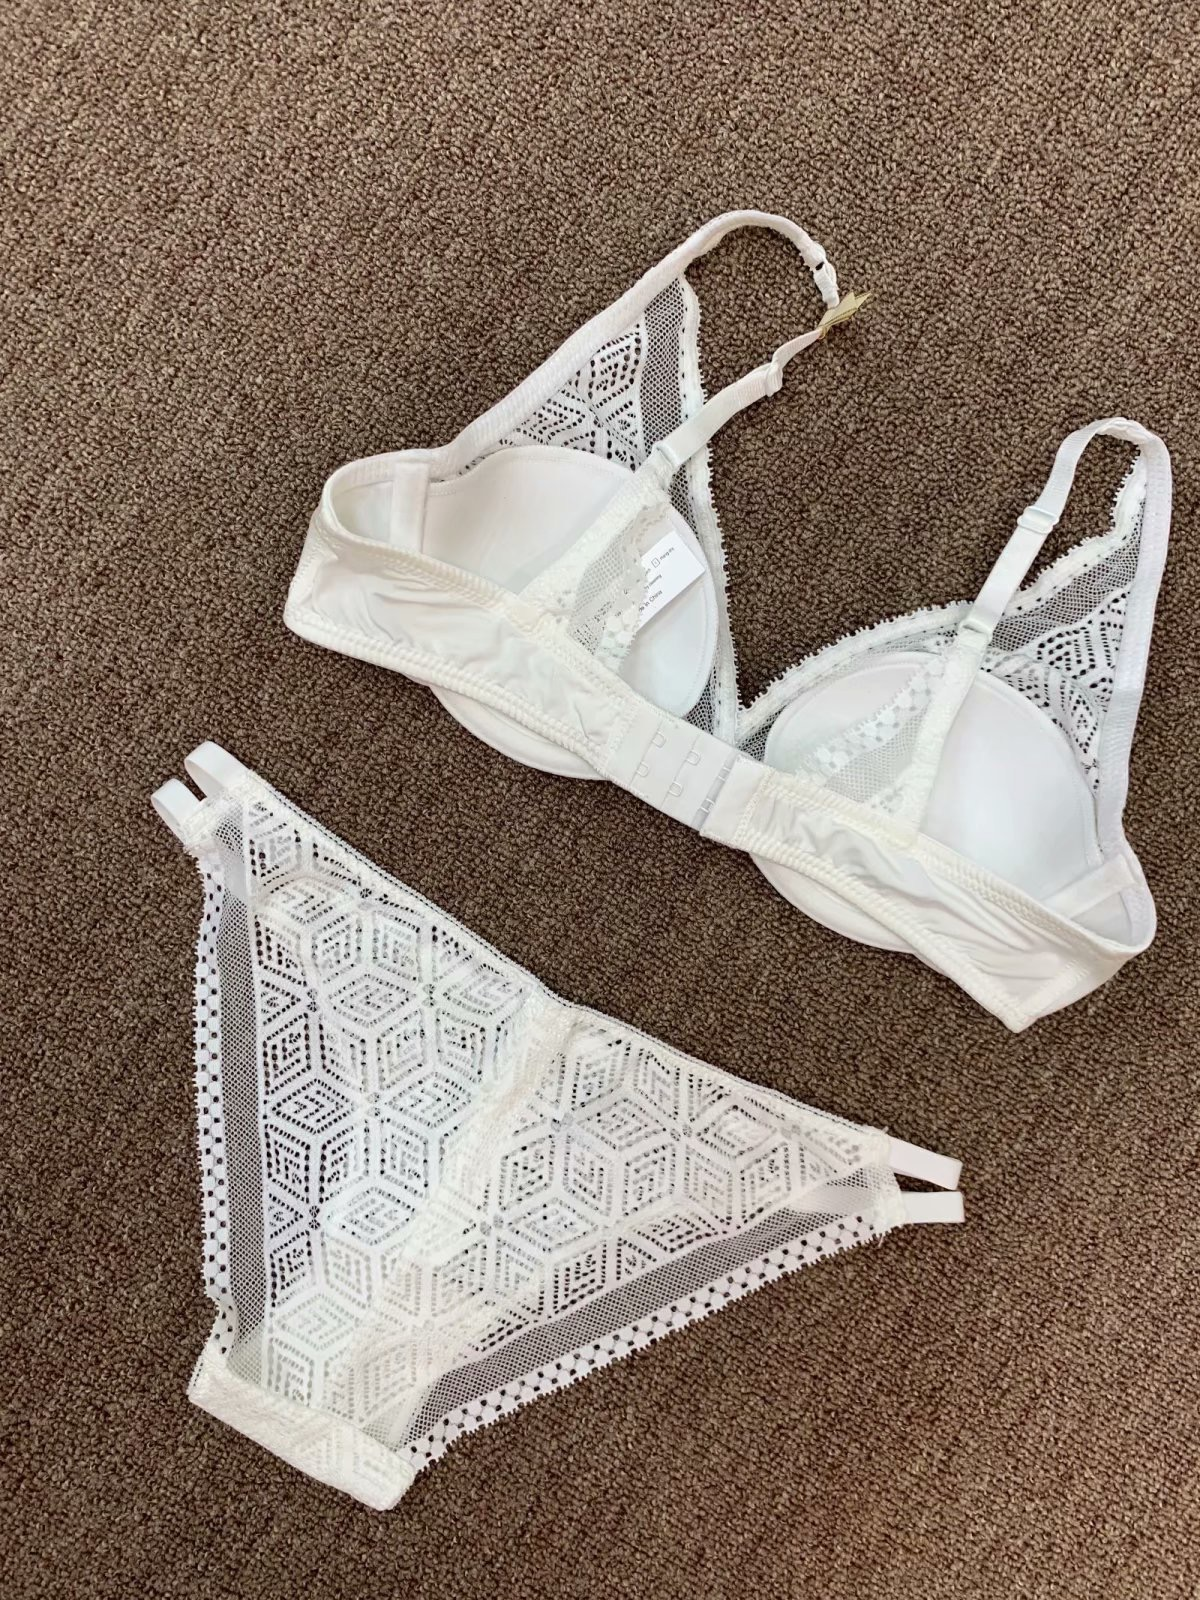 34 pad wire cup net lace bra and panty